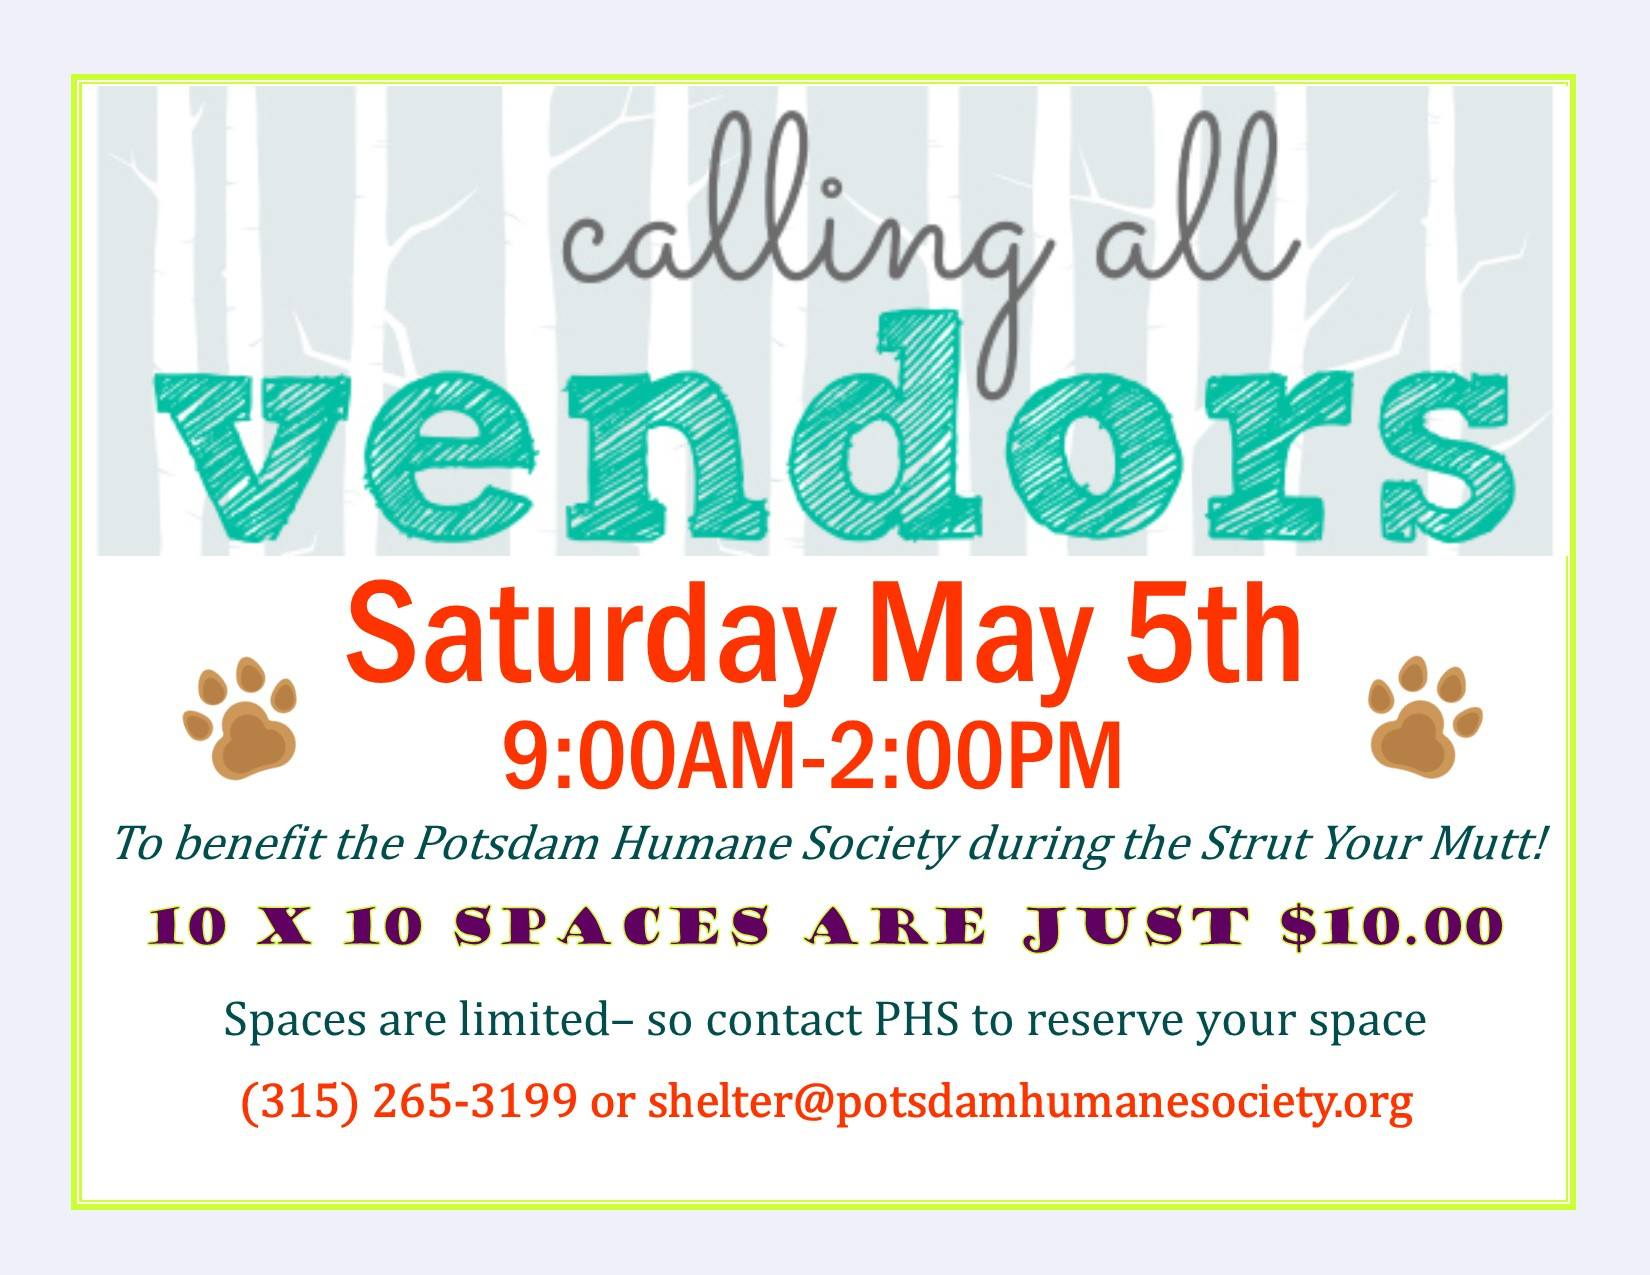 <a href='http://potsdamhumanesociety.org/wp/?p=6817'>Craft Show Saturday May 5th </a>